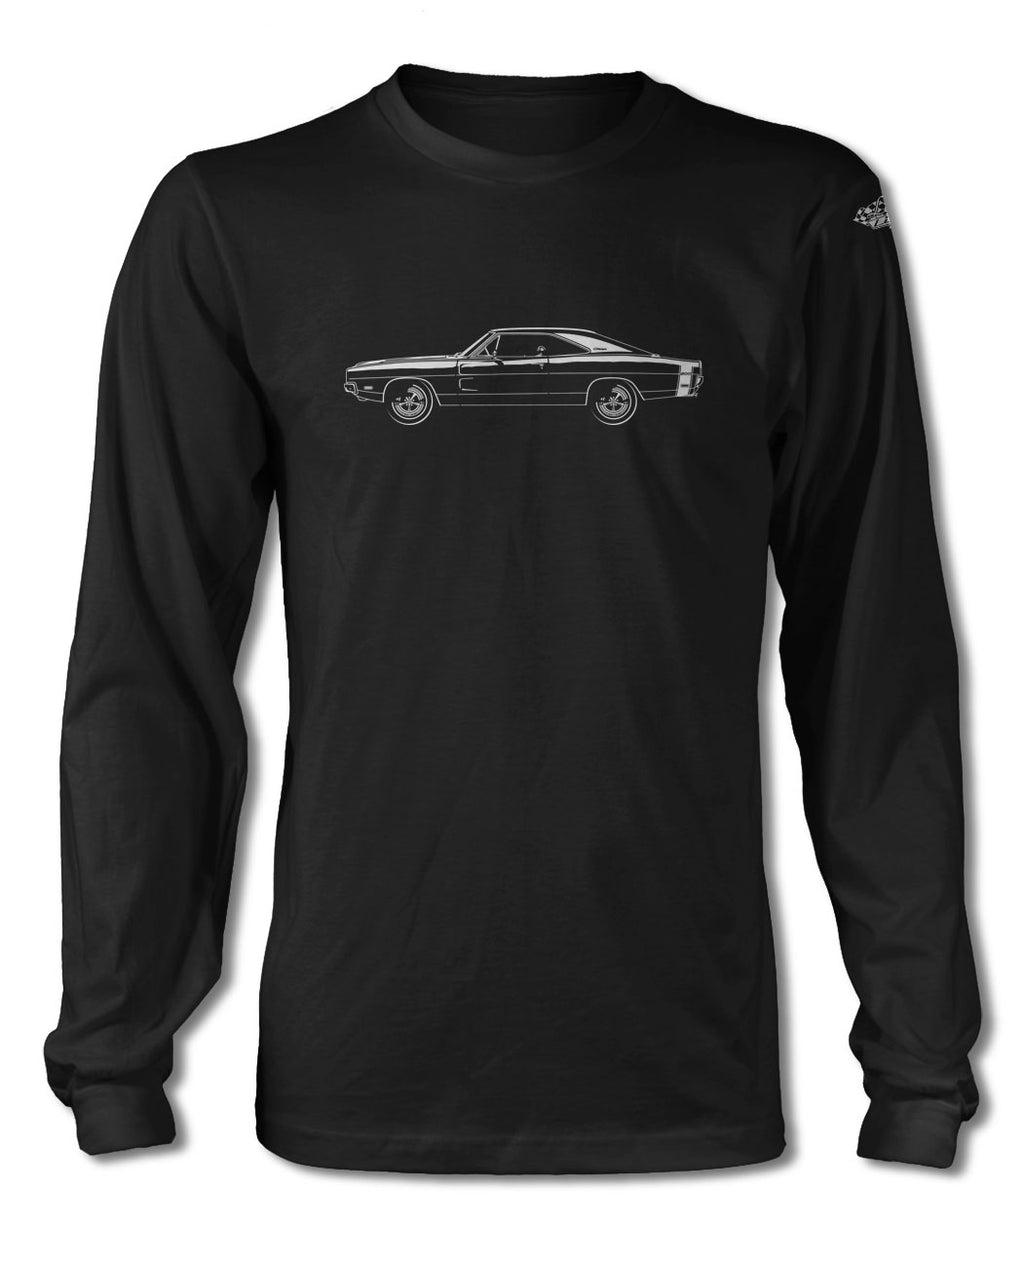 1969 Dodge Charger 500 Coupe T-Shirt - Long Sleeves - Side View